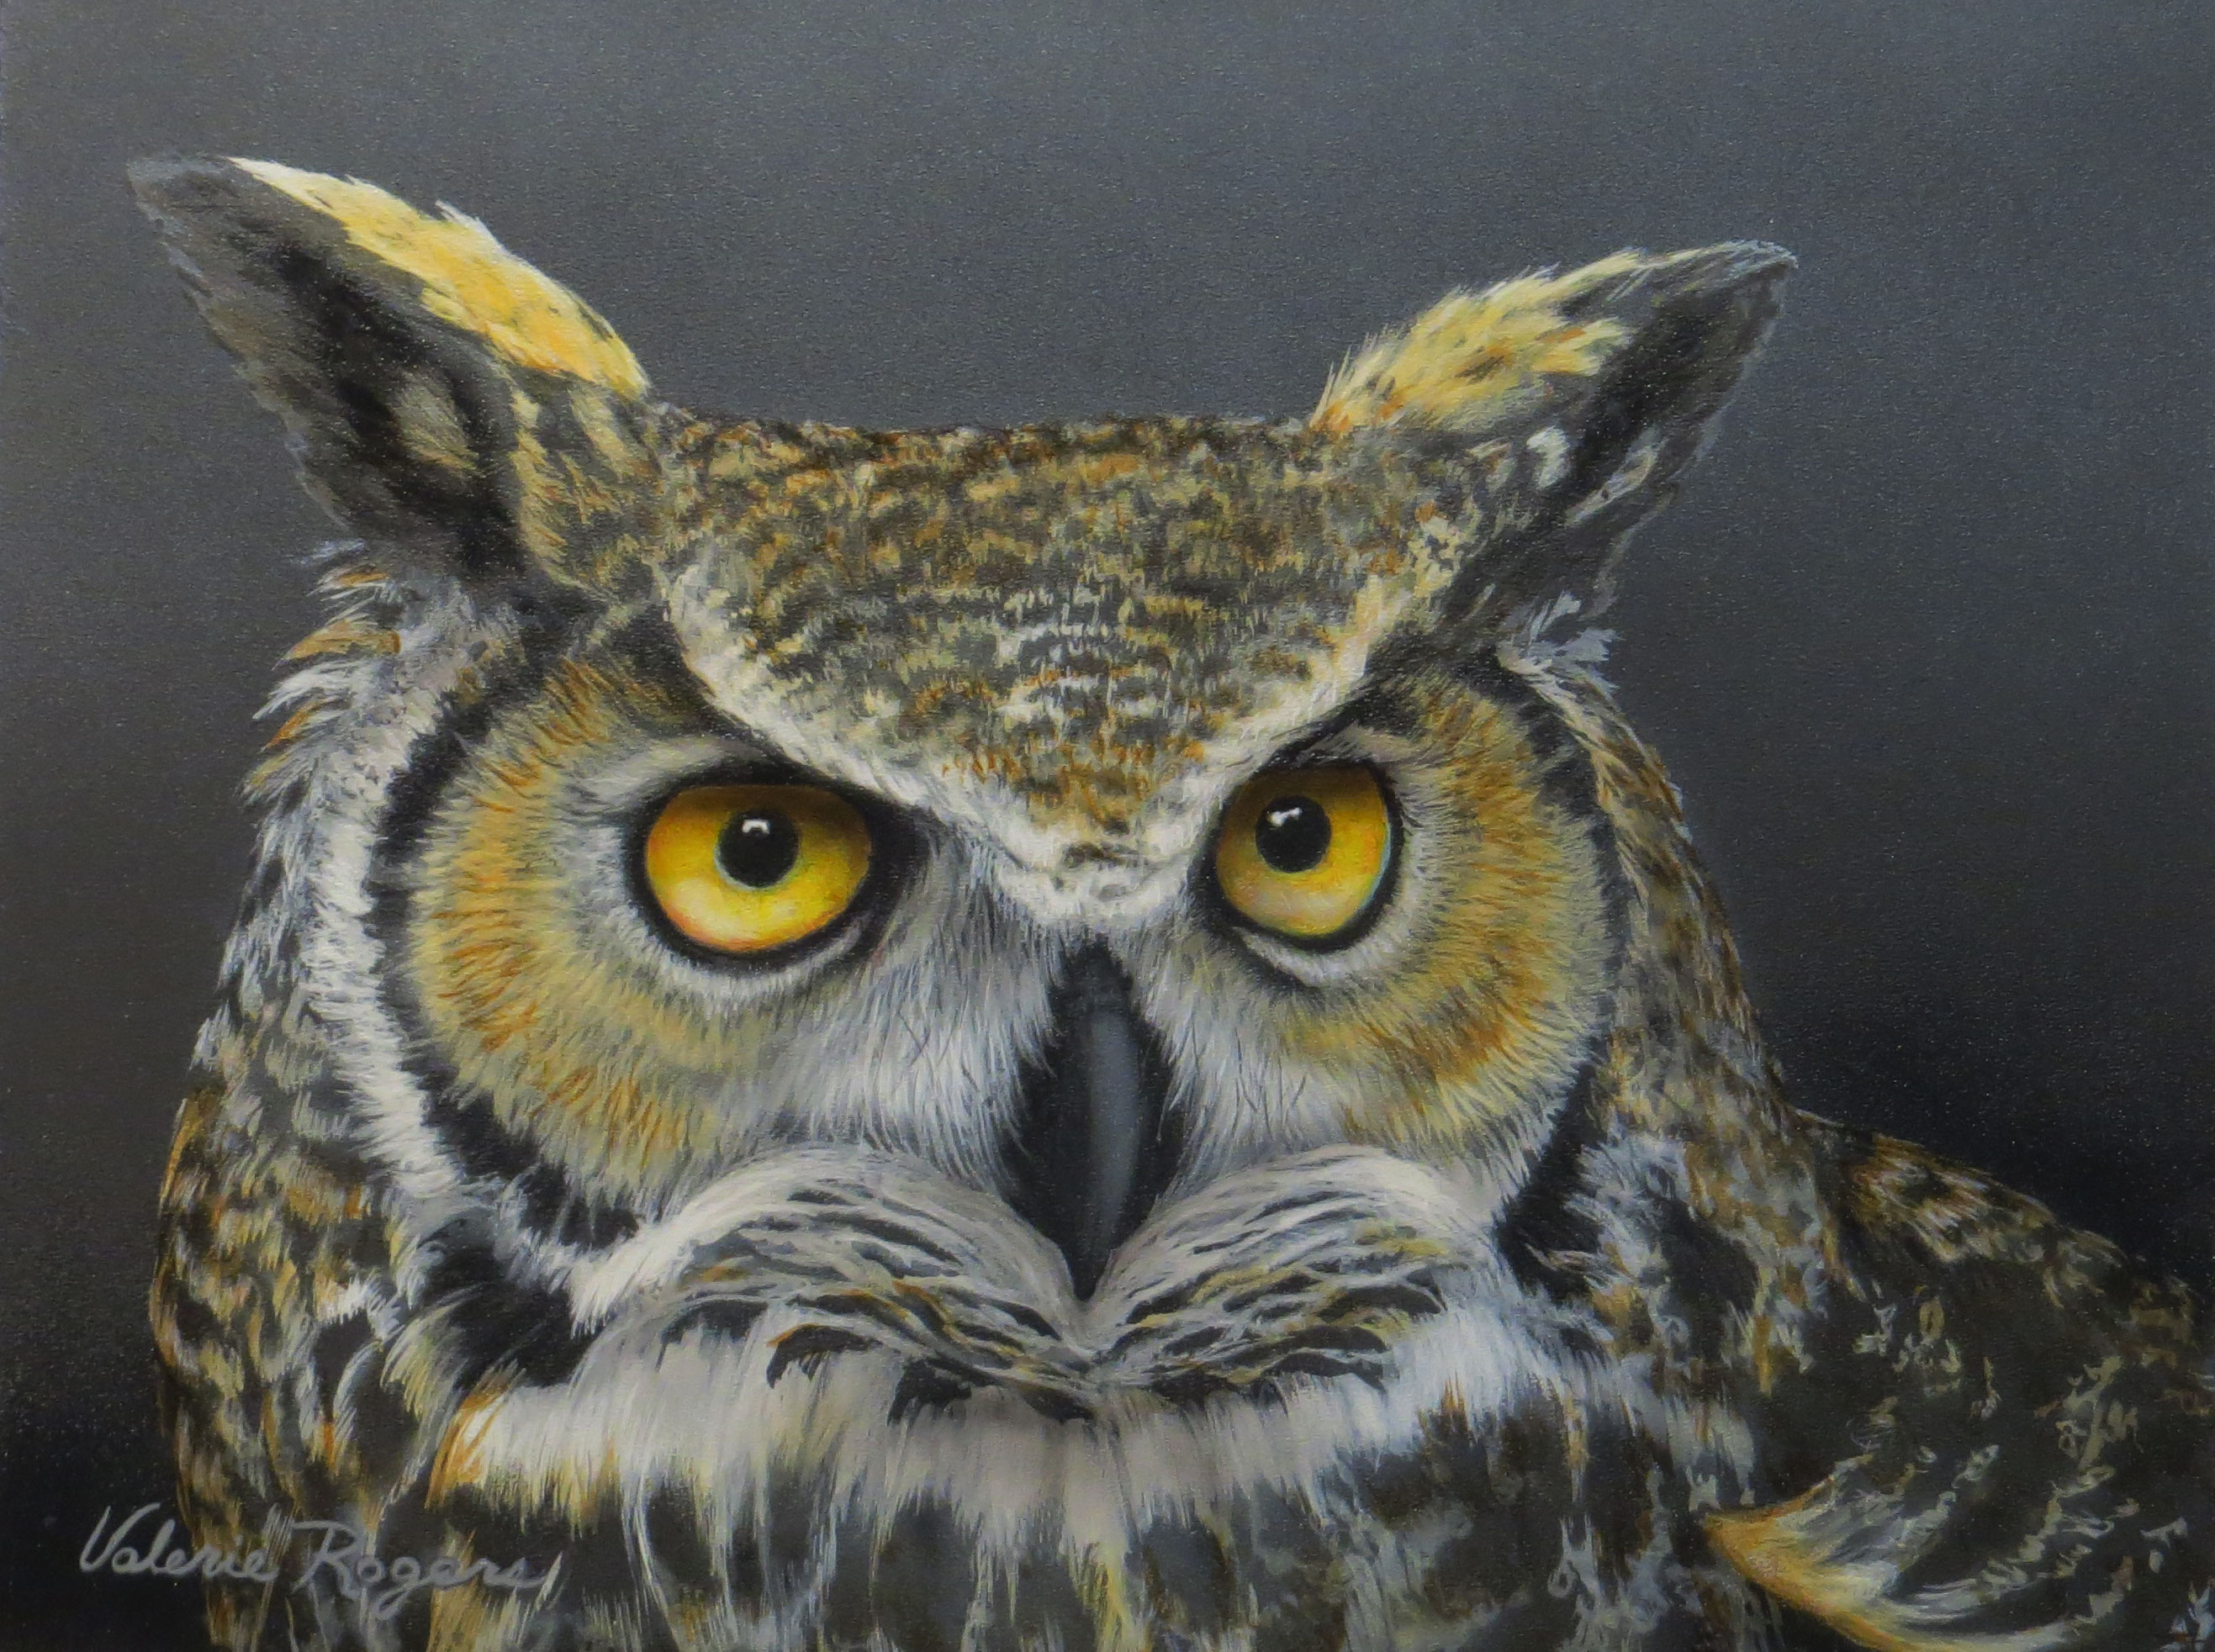 close up of great horned owl by Valerie Rogers